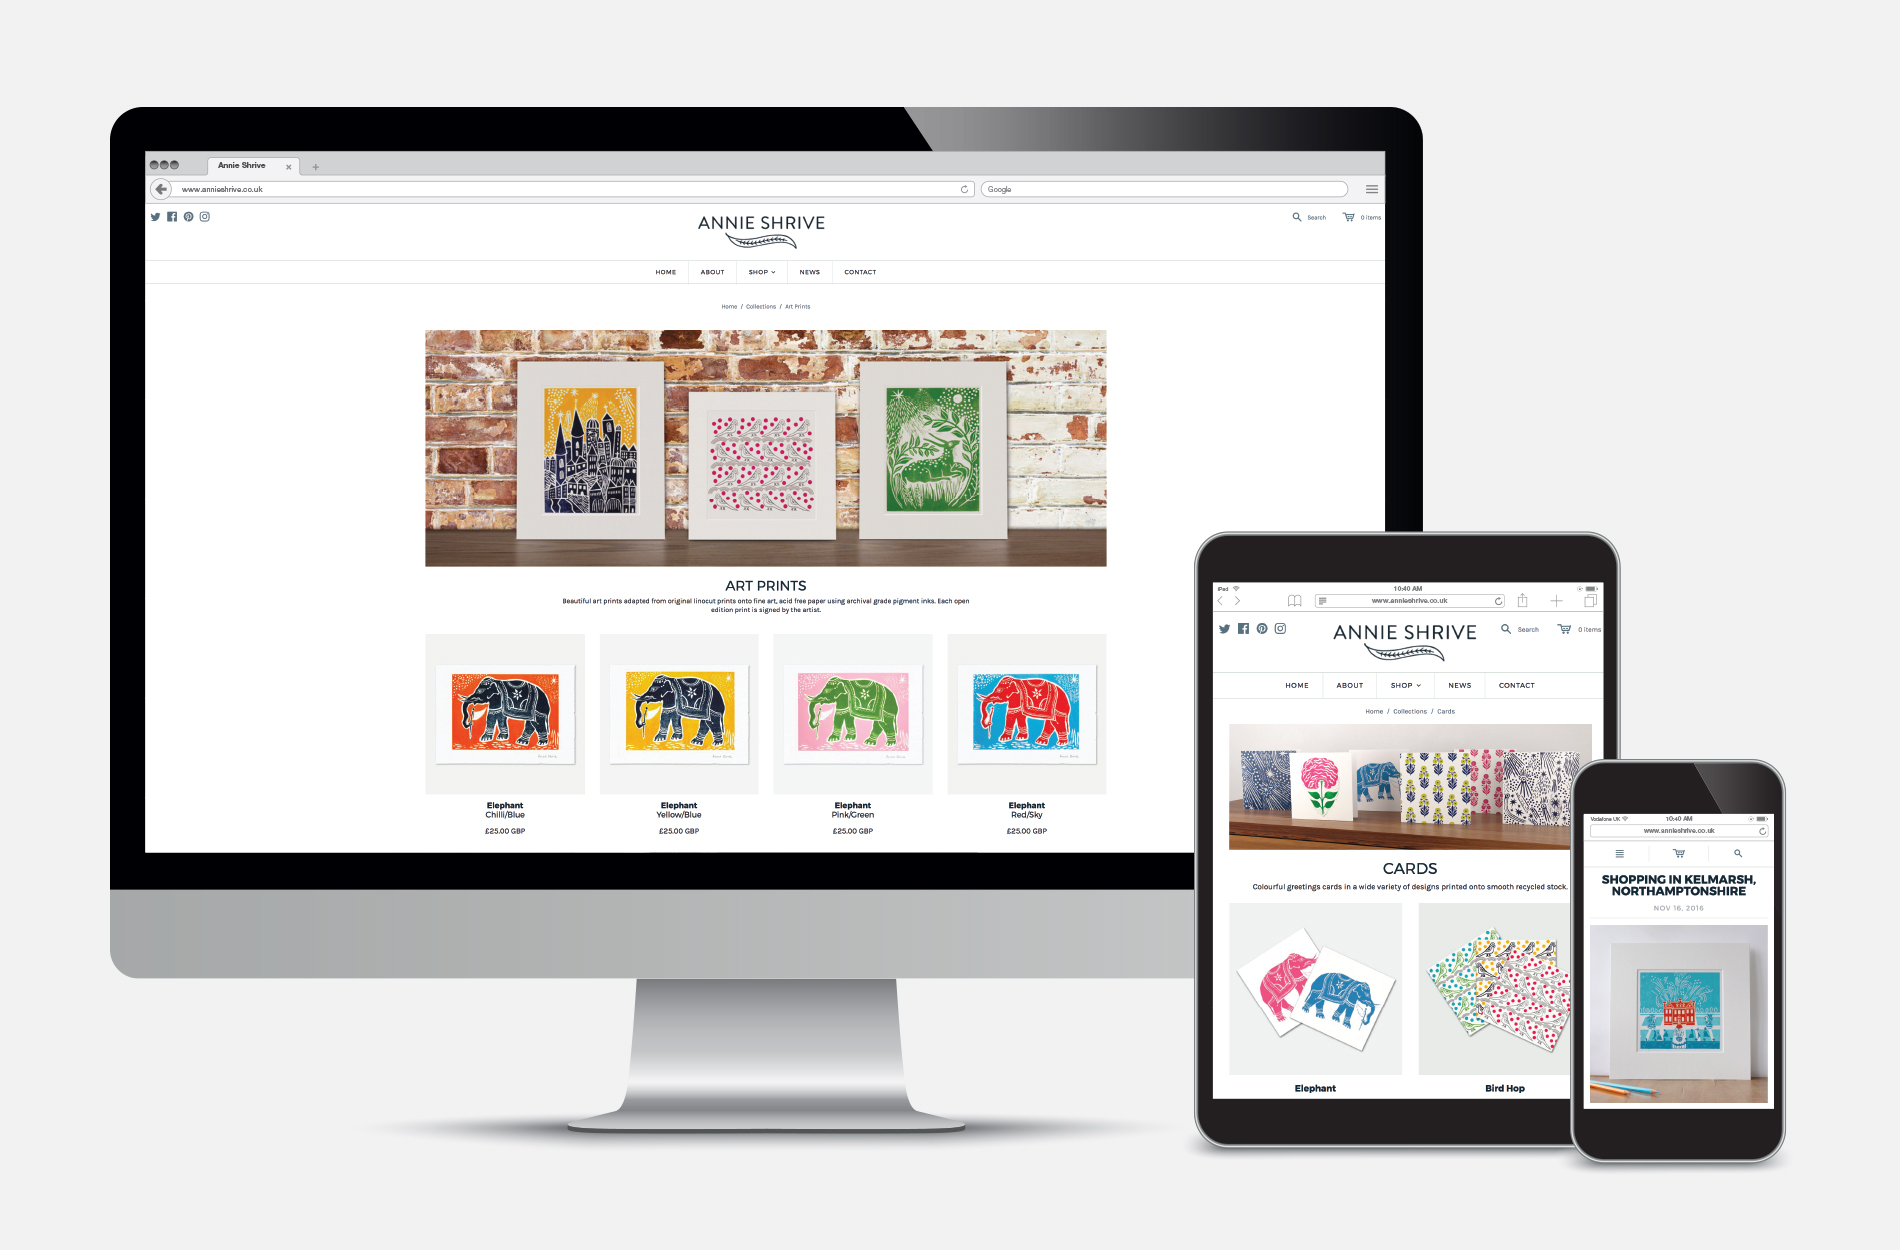 Shopify e-commerce website for Annie Shrive printmaker